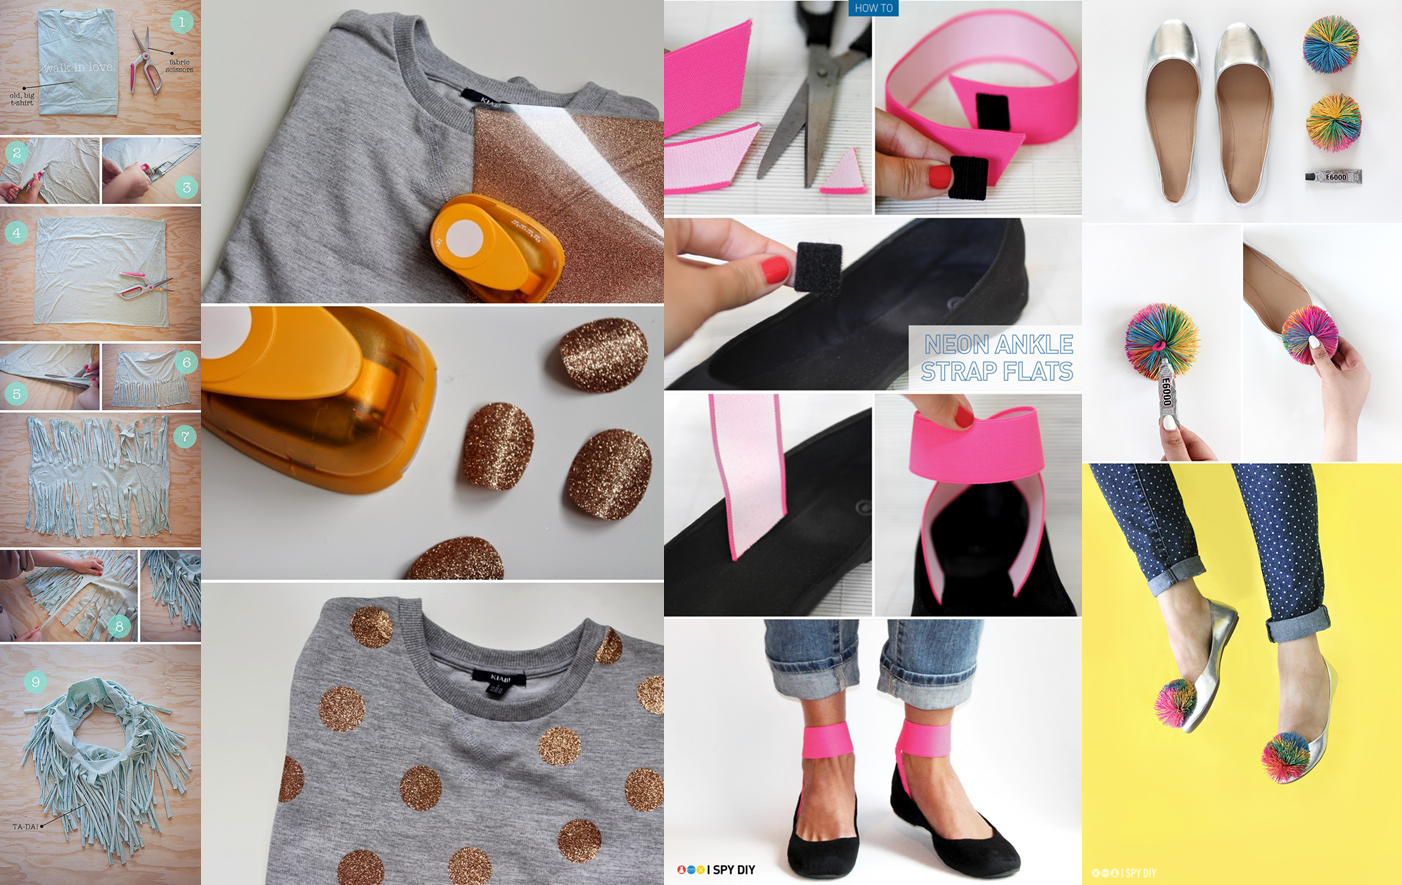 Diy crafts fashion 7124 apk download android lifestyle apps diy crafts fashion 7124 screenshot 8 solutioingenieria Images